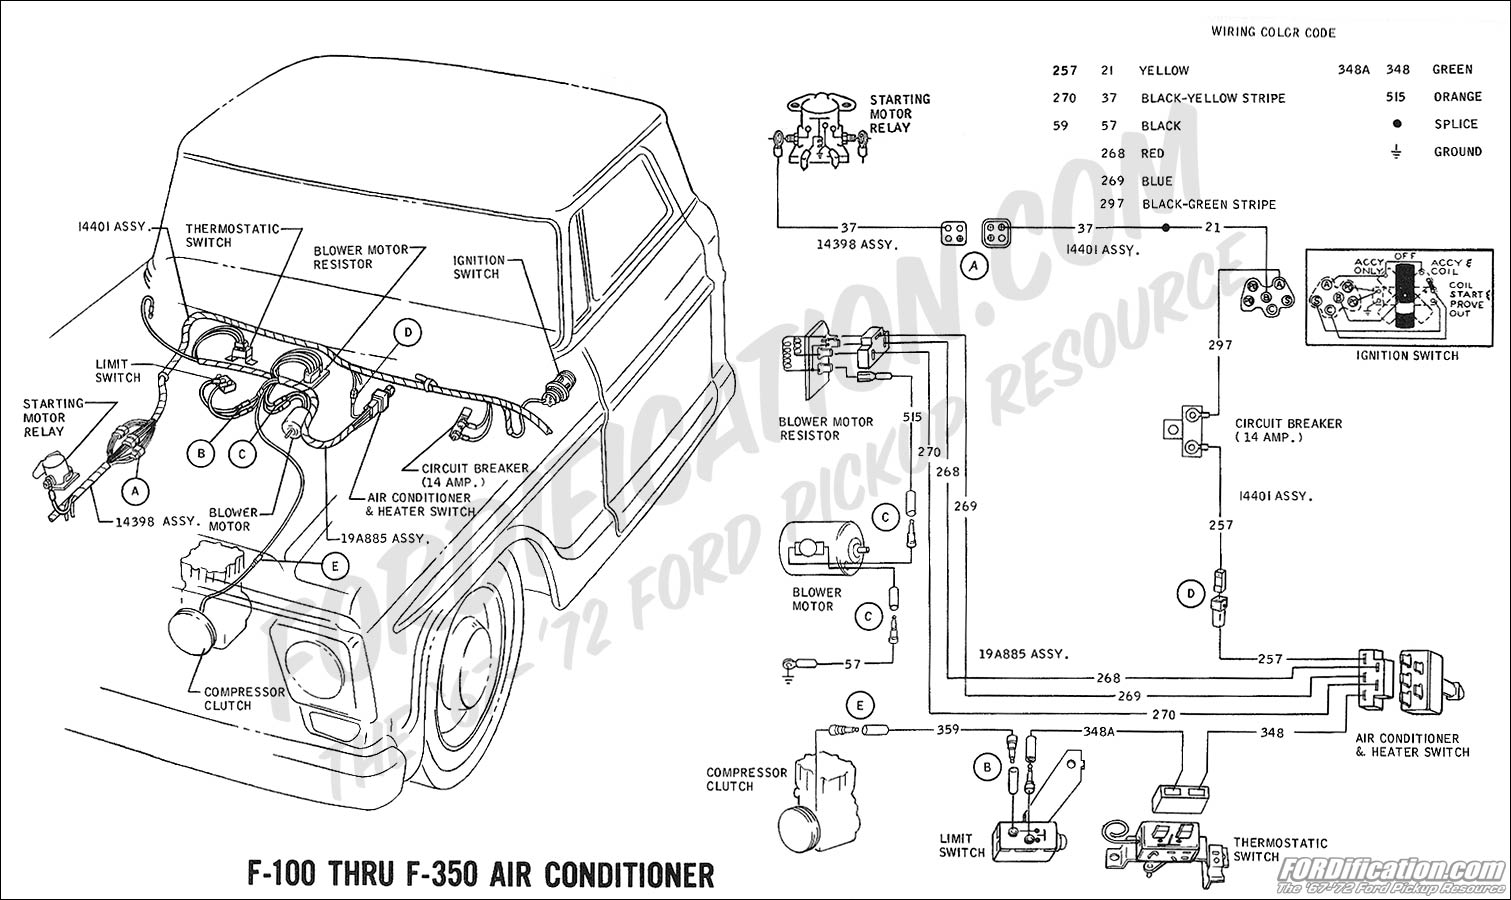 wiring_69ac 1983 ford f150 wiring diagram f150 alternator wiring diagram 96 f150 wiring diagram at cos-gaming.co